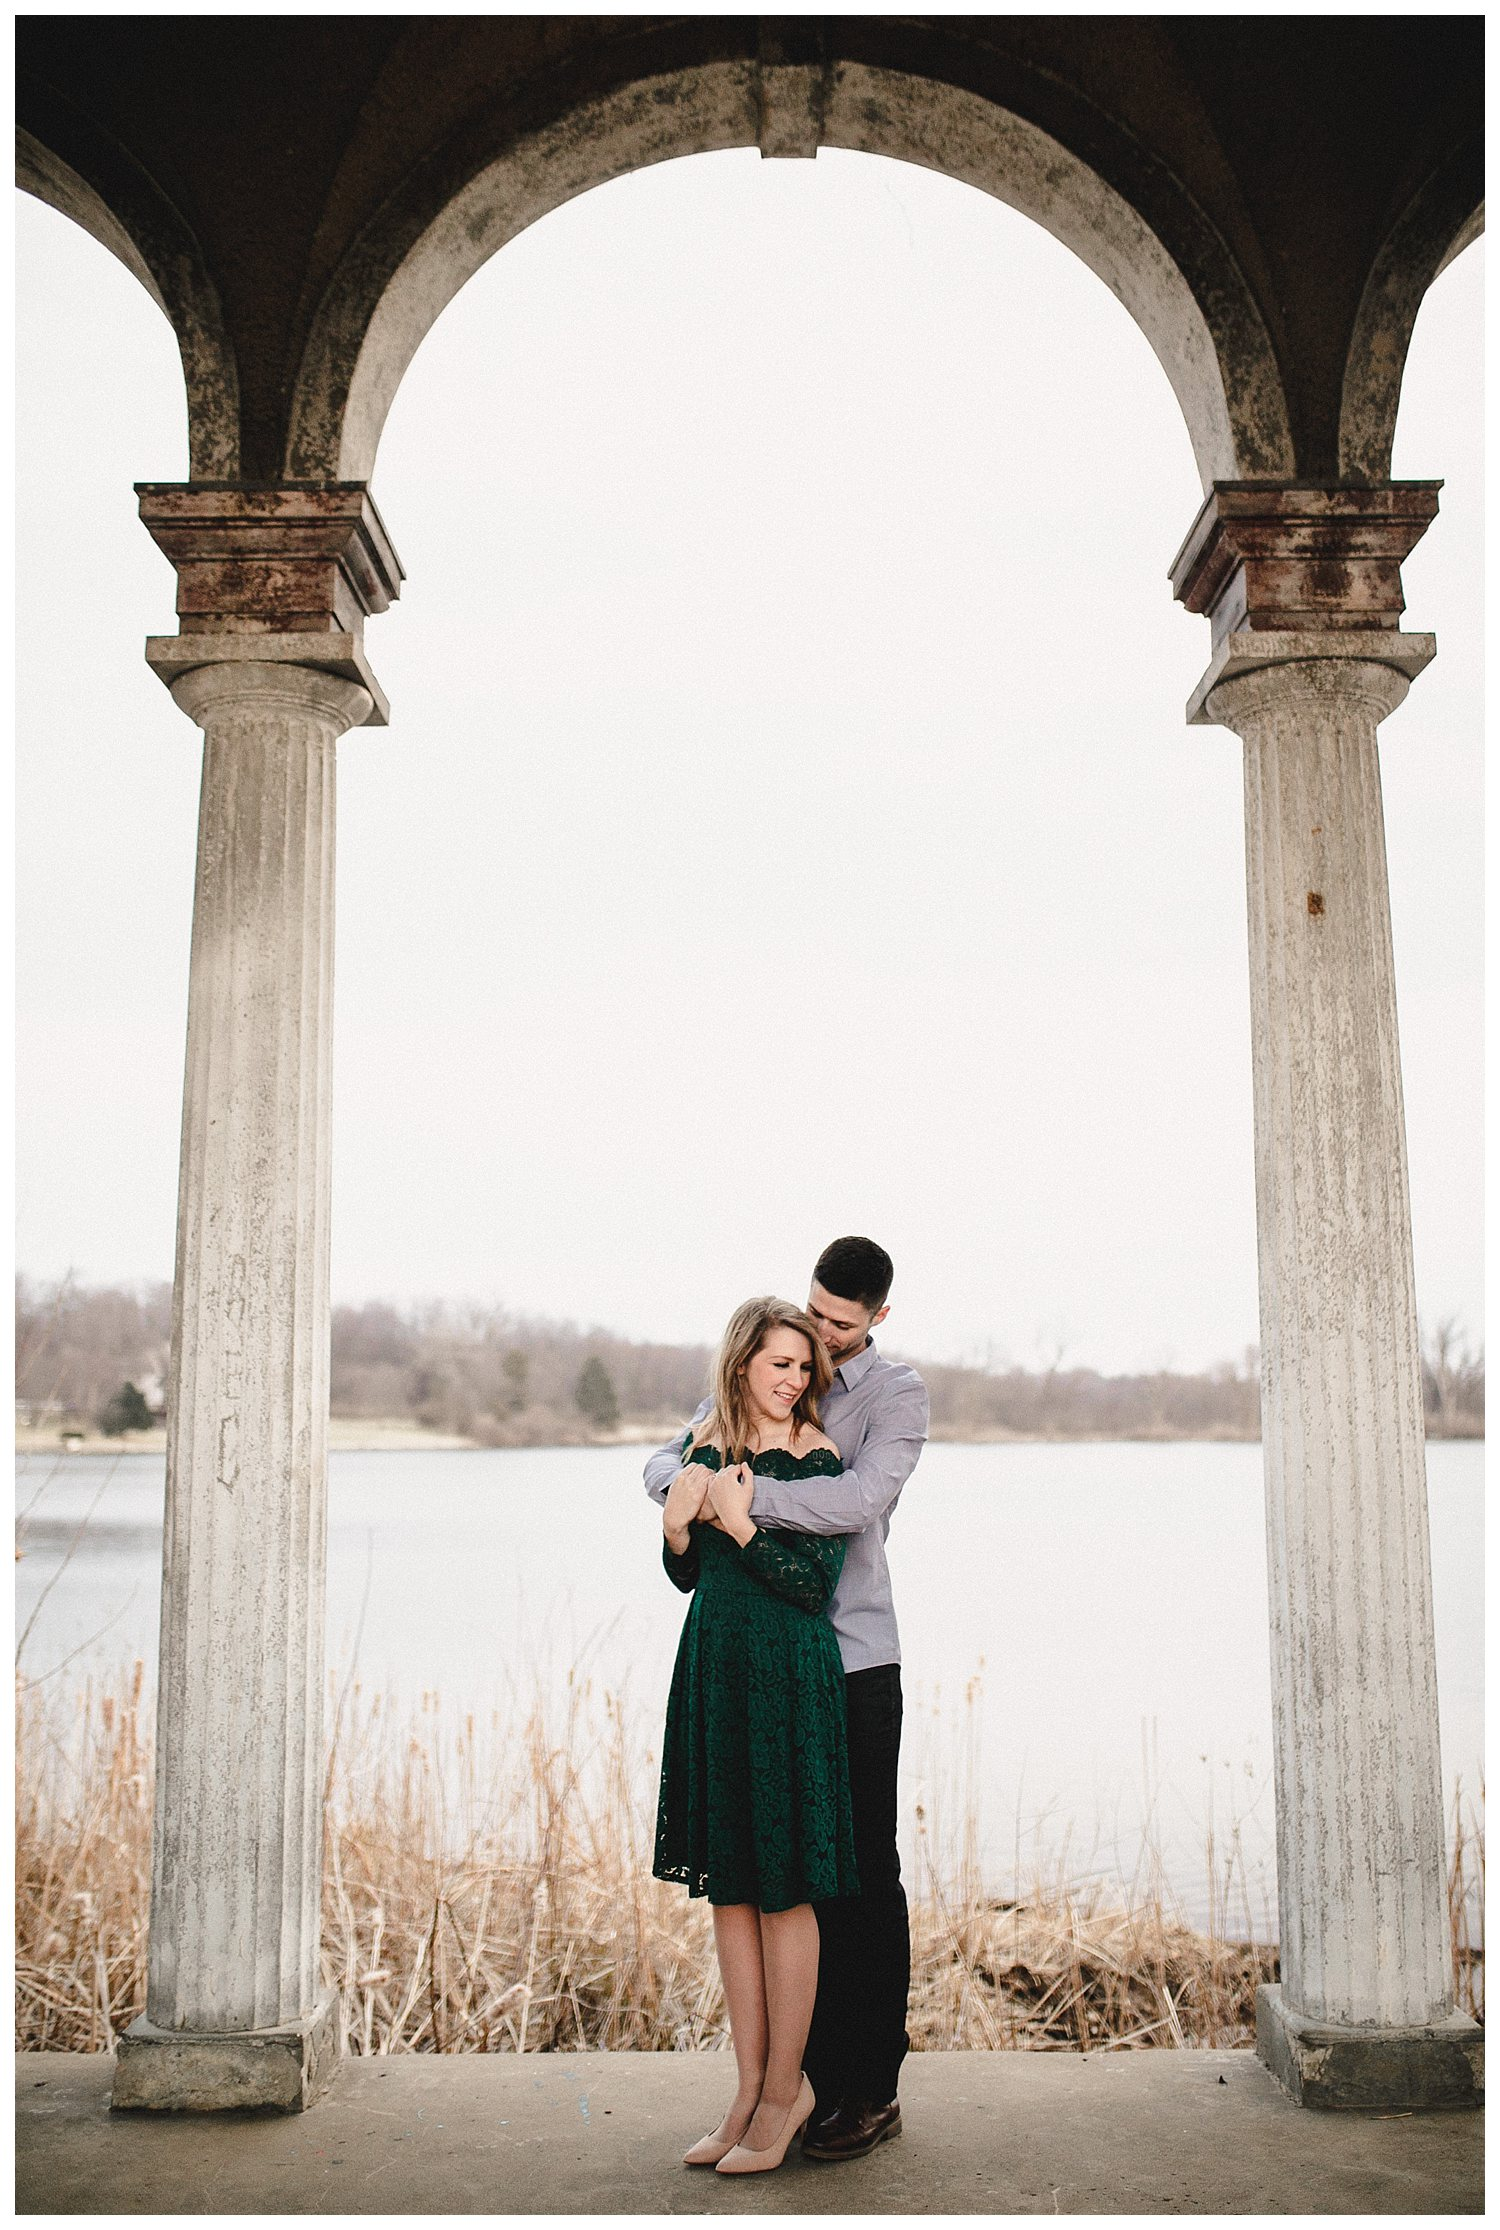 Kelsey_Diane_Photography_Loose_Mansion_Wedding_Photography_Kansas_City_Victor_Lyndsay_0305.jpg